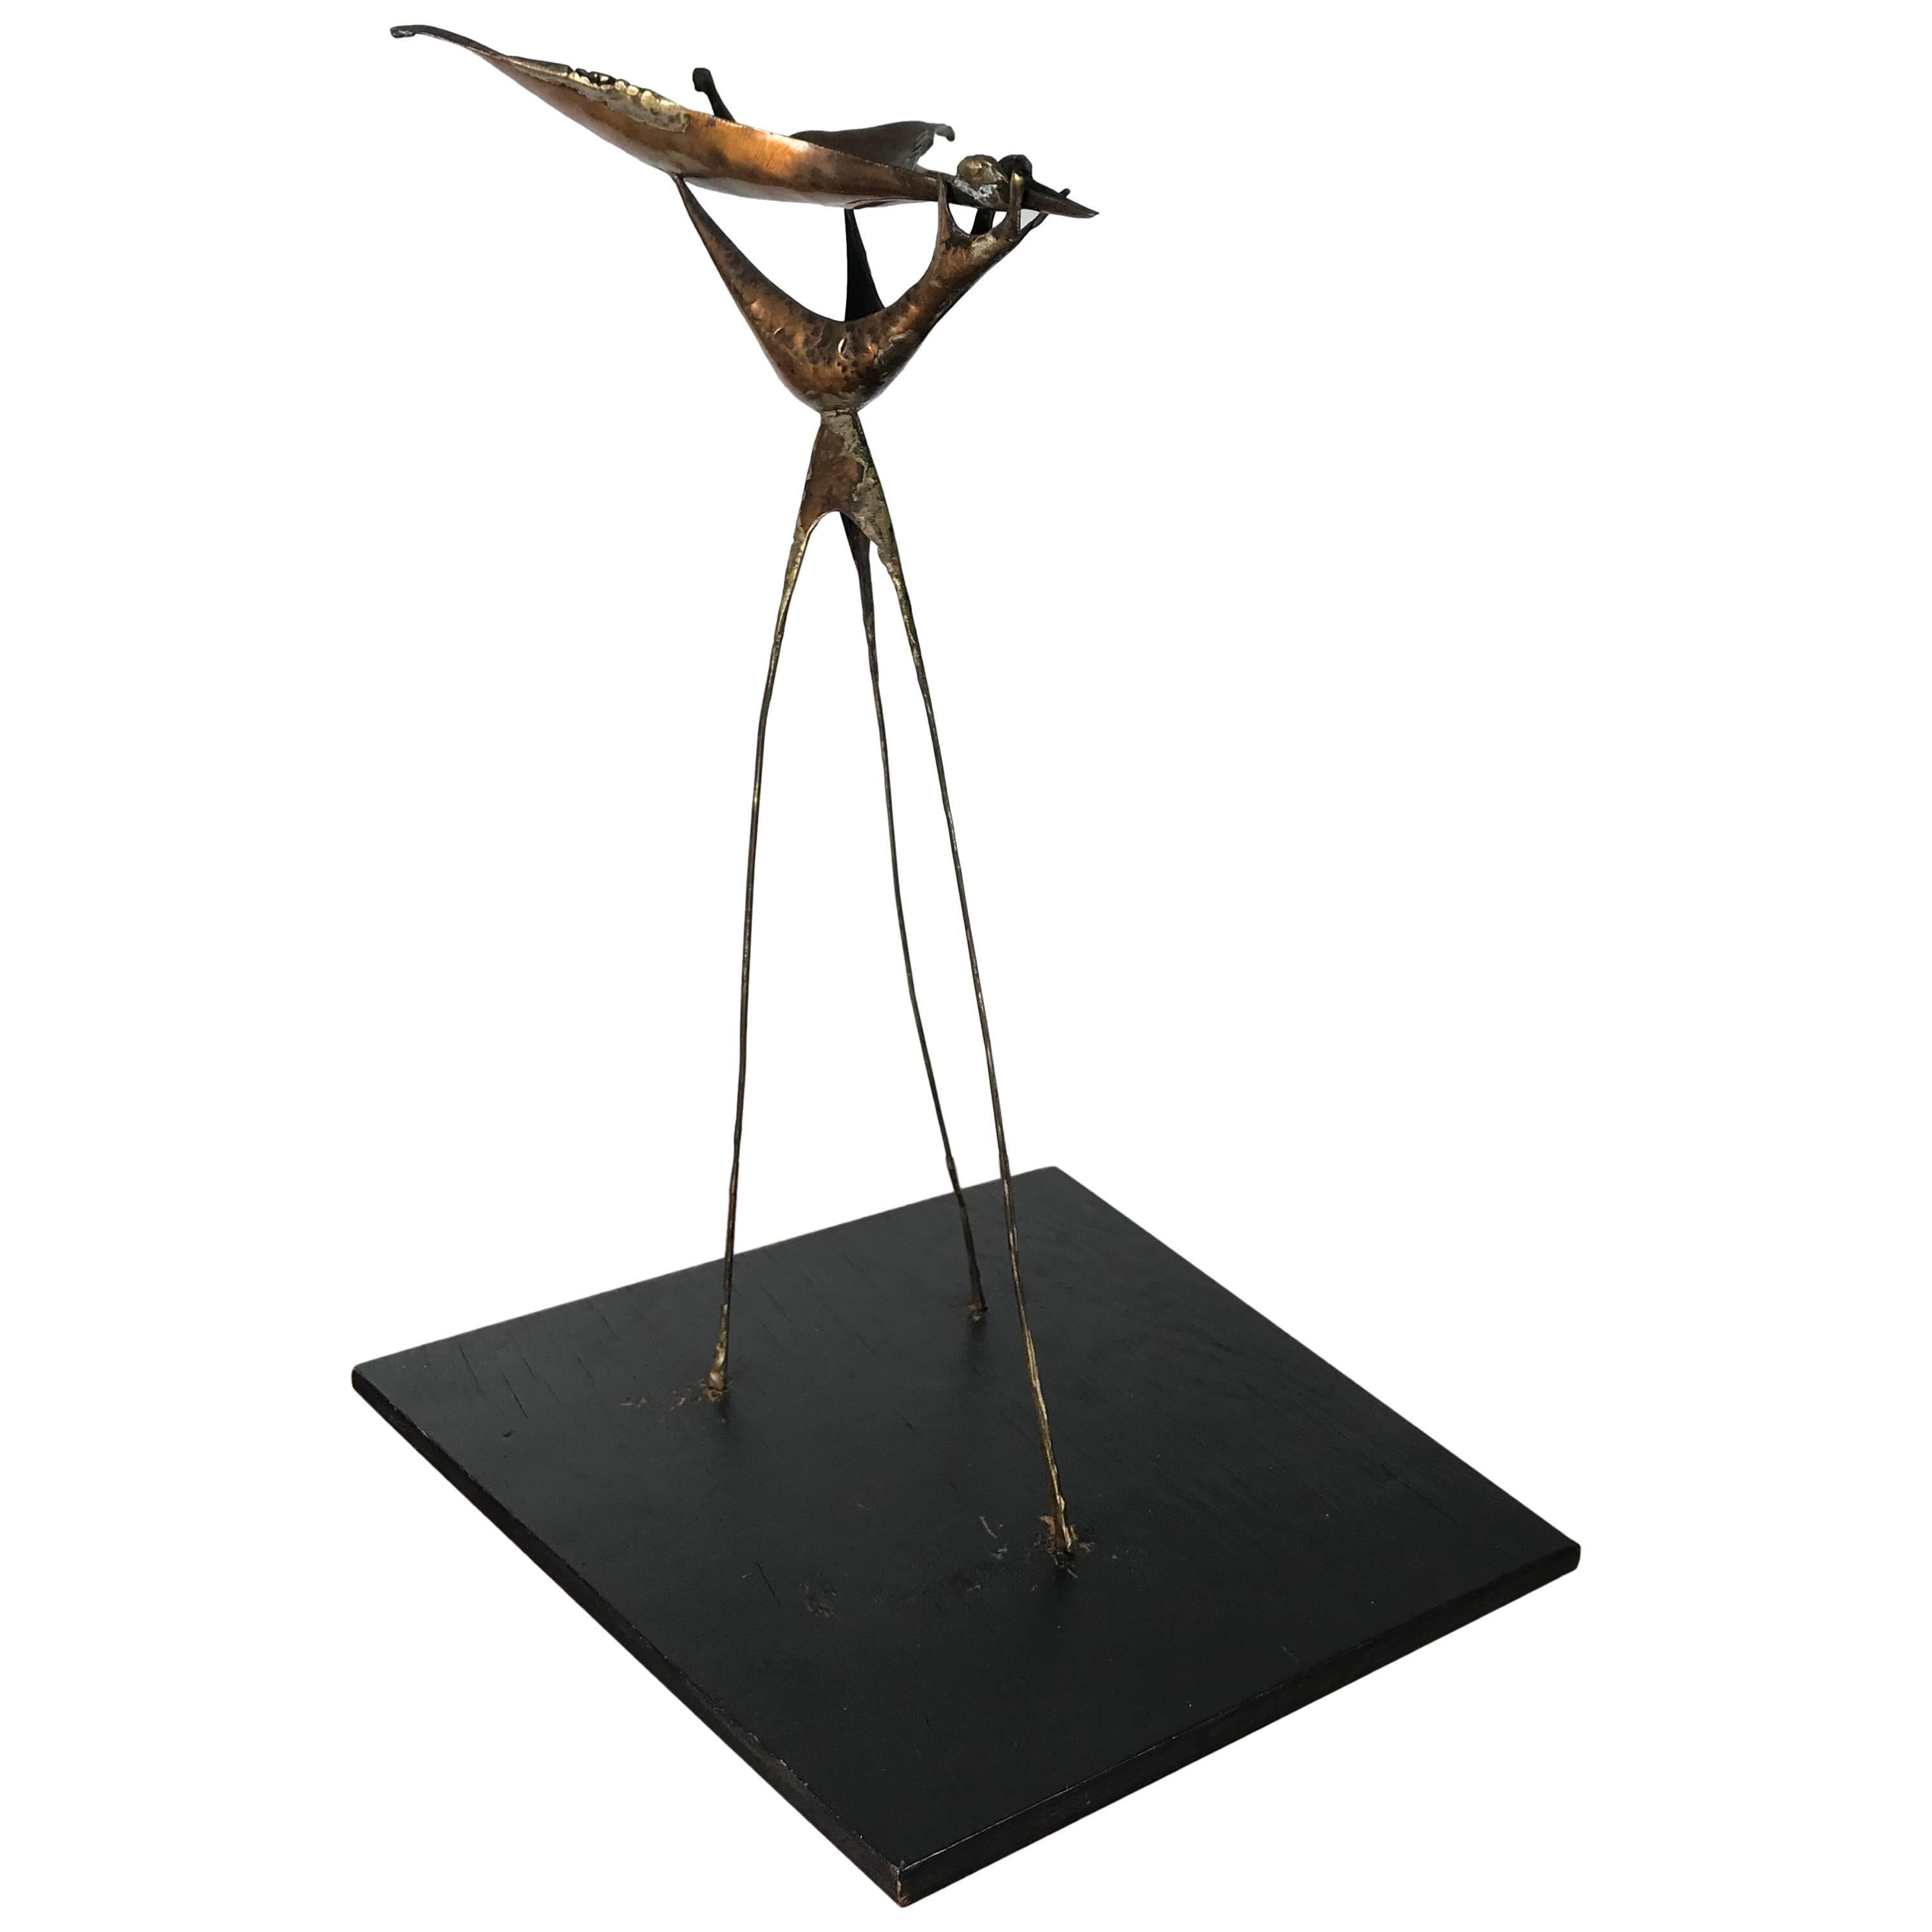 """Abstract Bronze Sculpture """"Soaring"""" Study/Maquette by Robert Cronbach"""